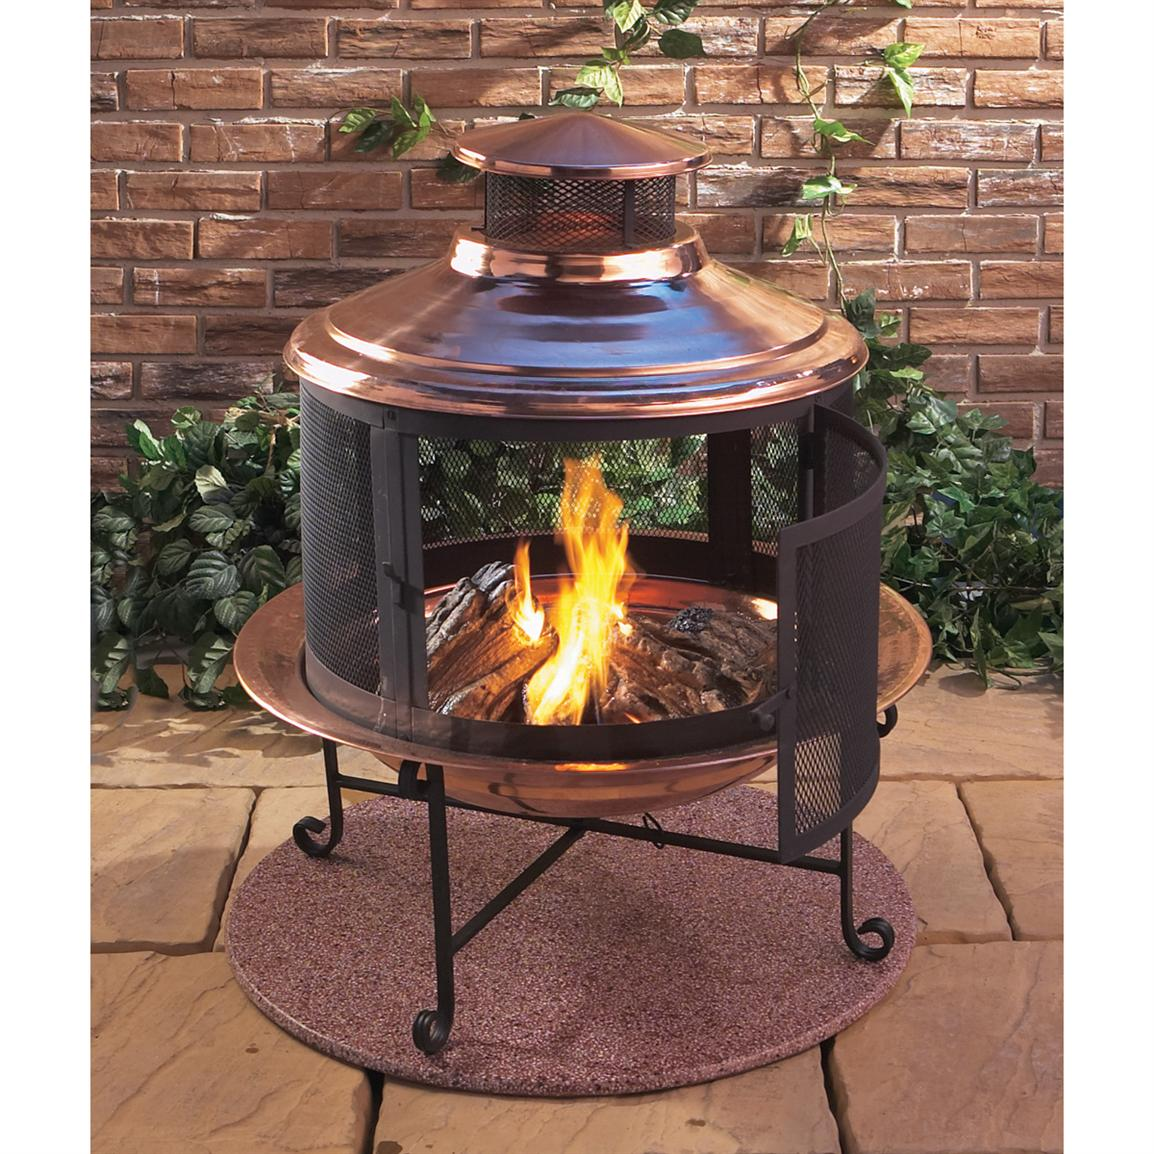 Lit Your Outdoor Space Nuance with Chiminea Fire Pit for ... on Outdoor Fireplace Pit id=48806